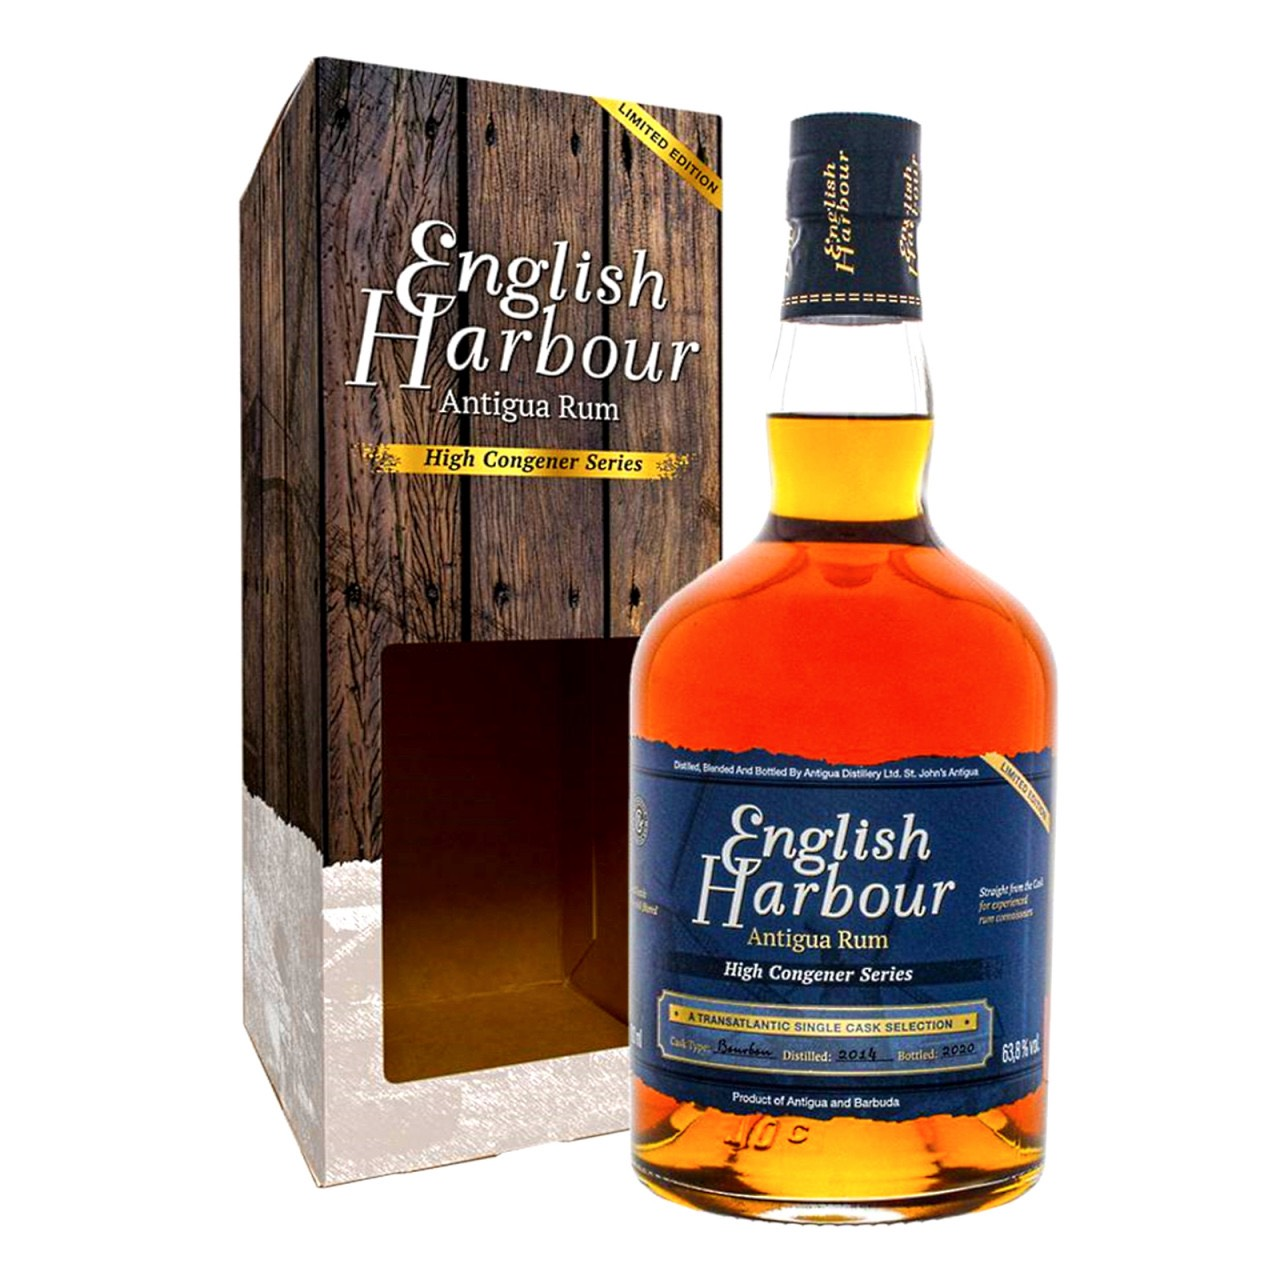 Bottle image of English Harbour High Congener Series